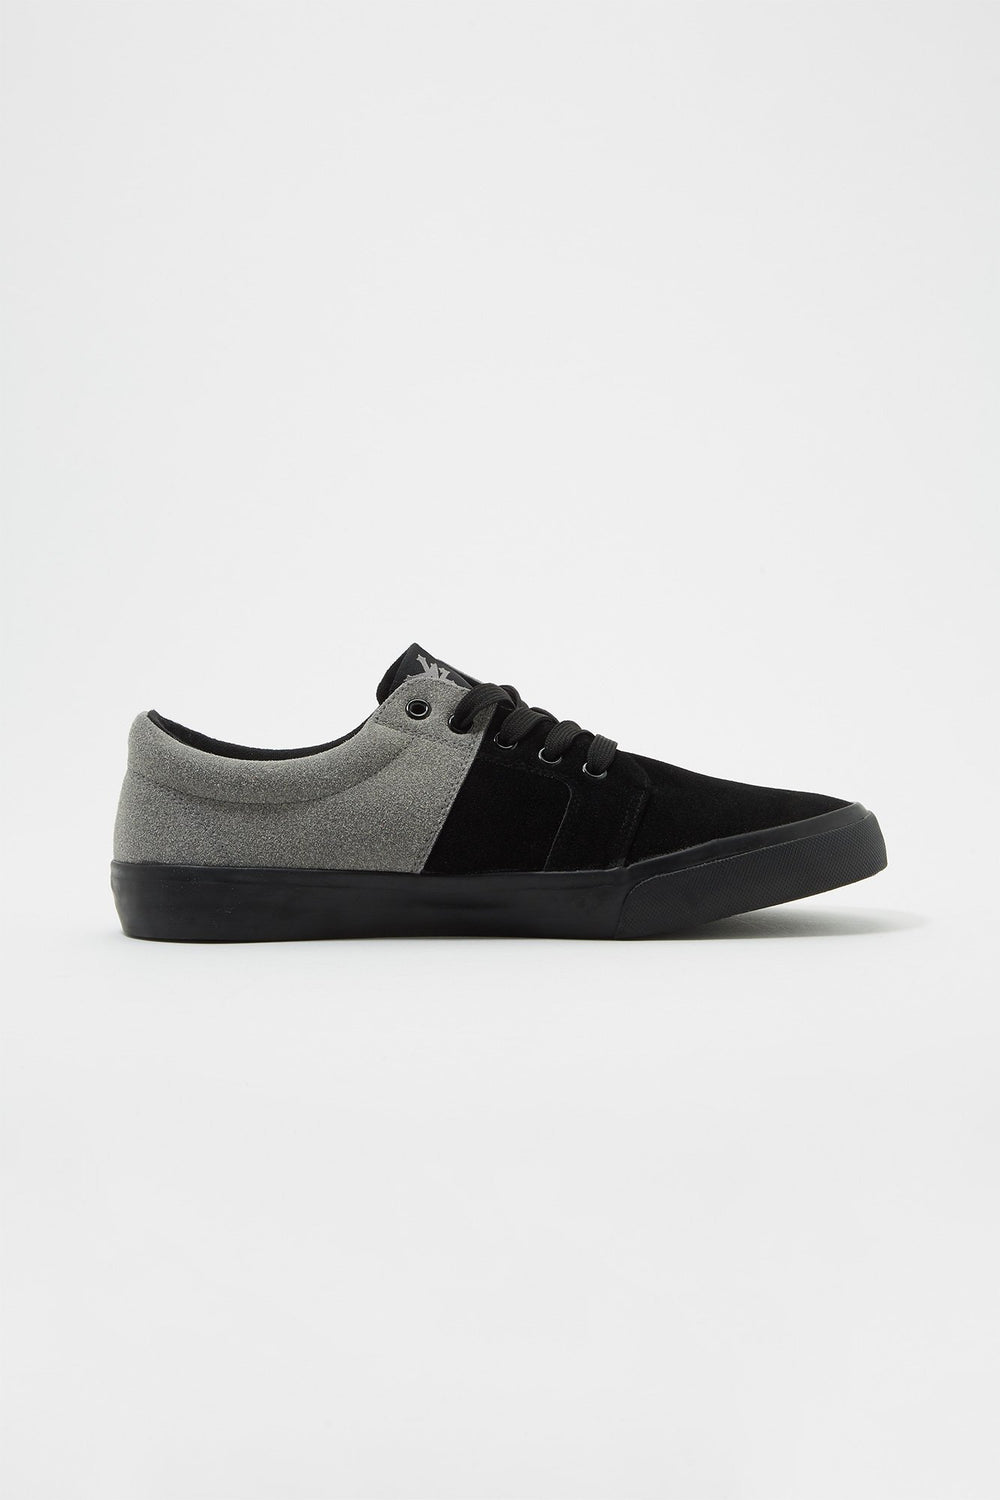 Zoo York Boys All Black Stack Lace-Up Canvas Shoes Zoo York Boys All Black Stack Lace-Up Canvas Shoes